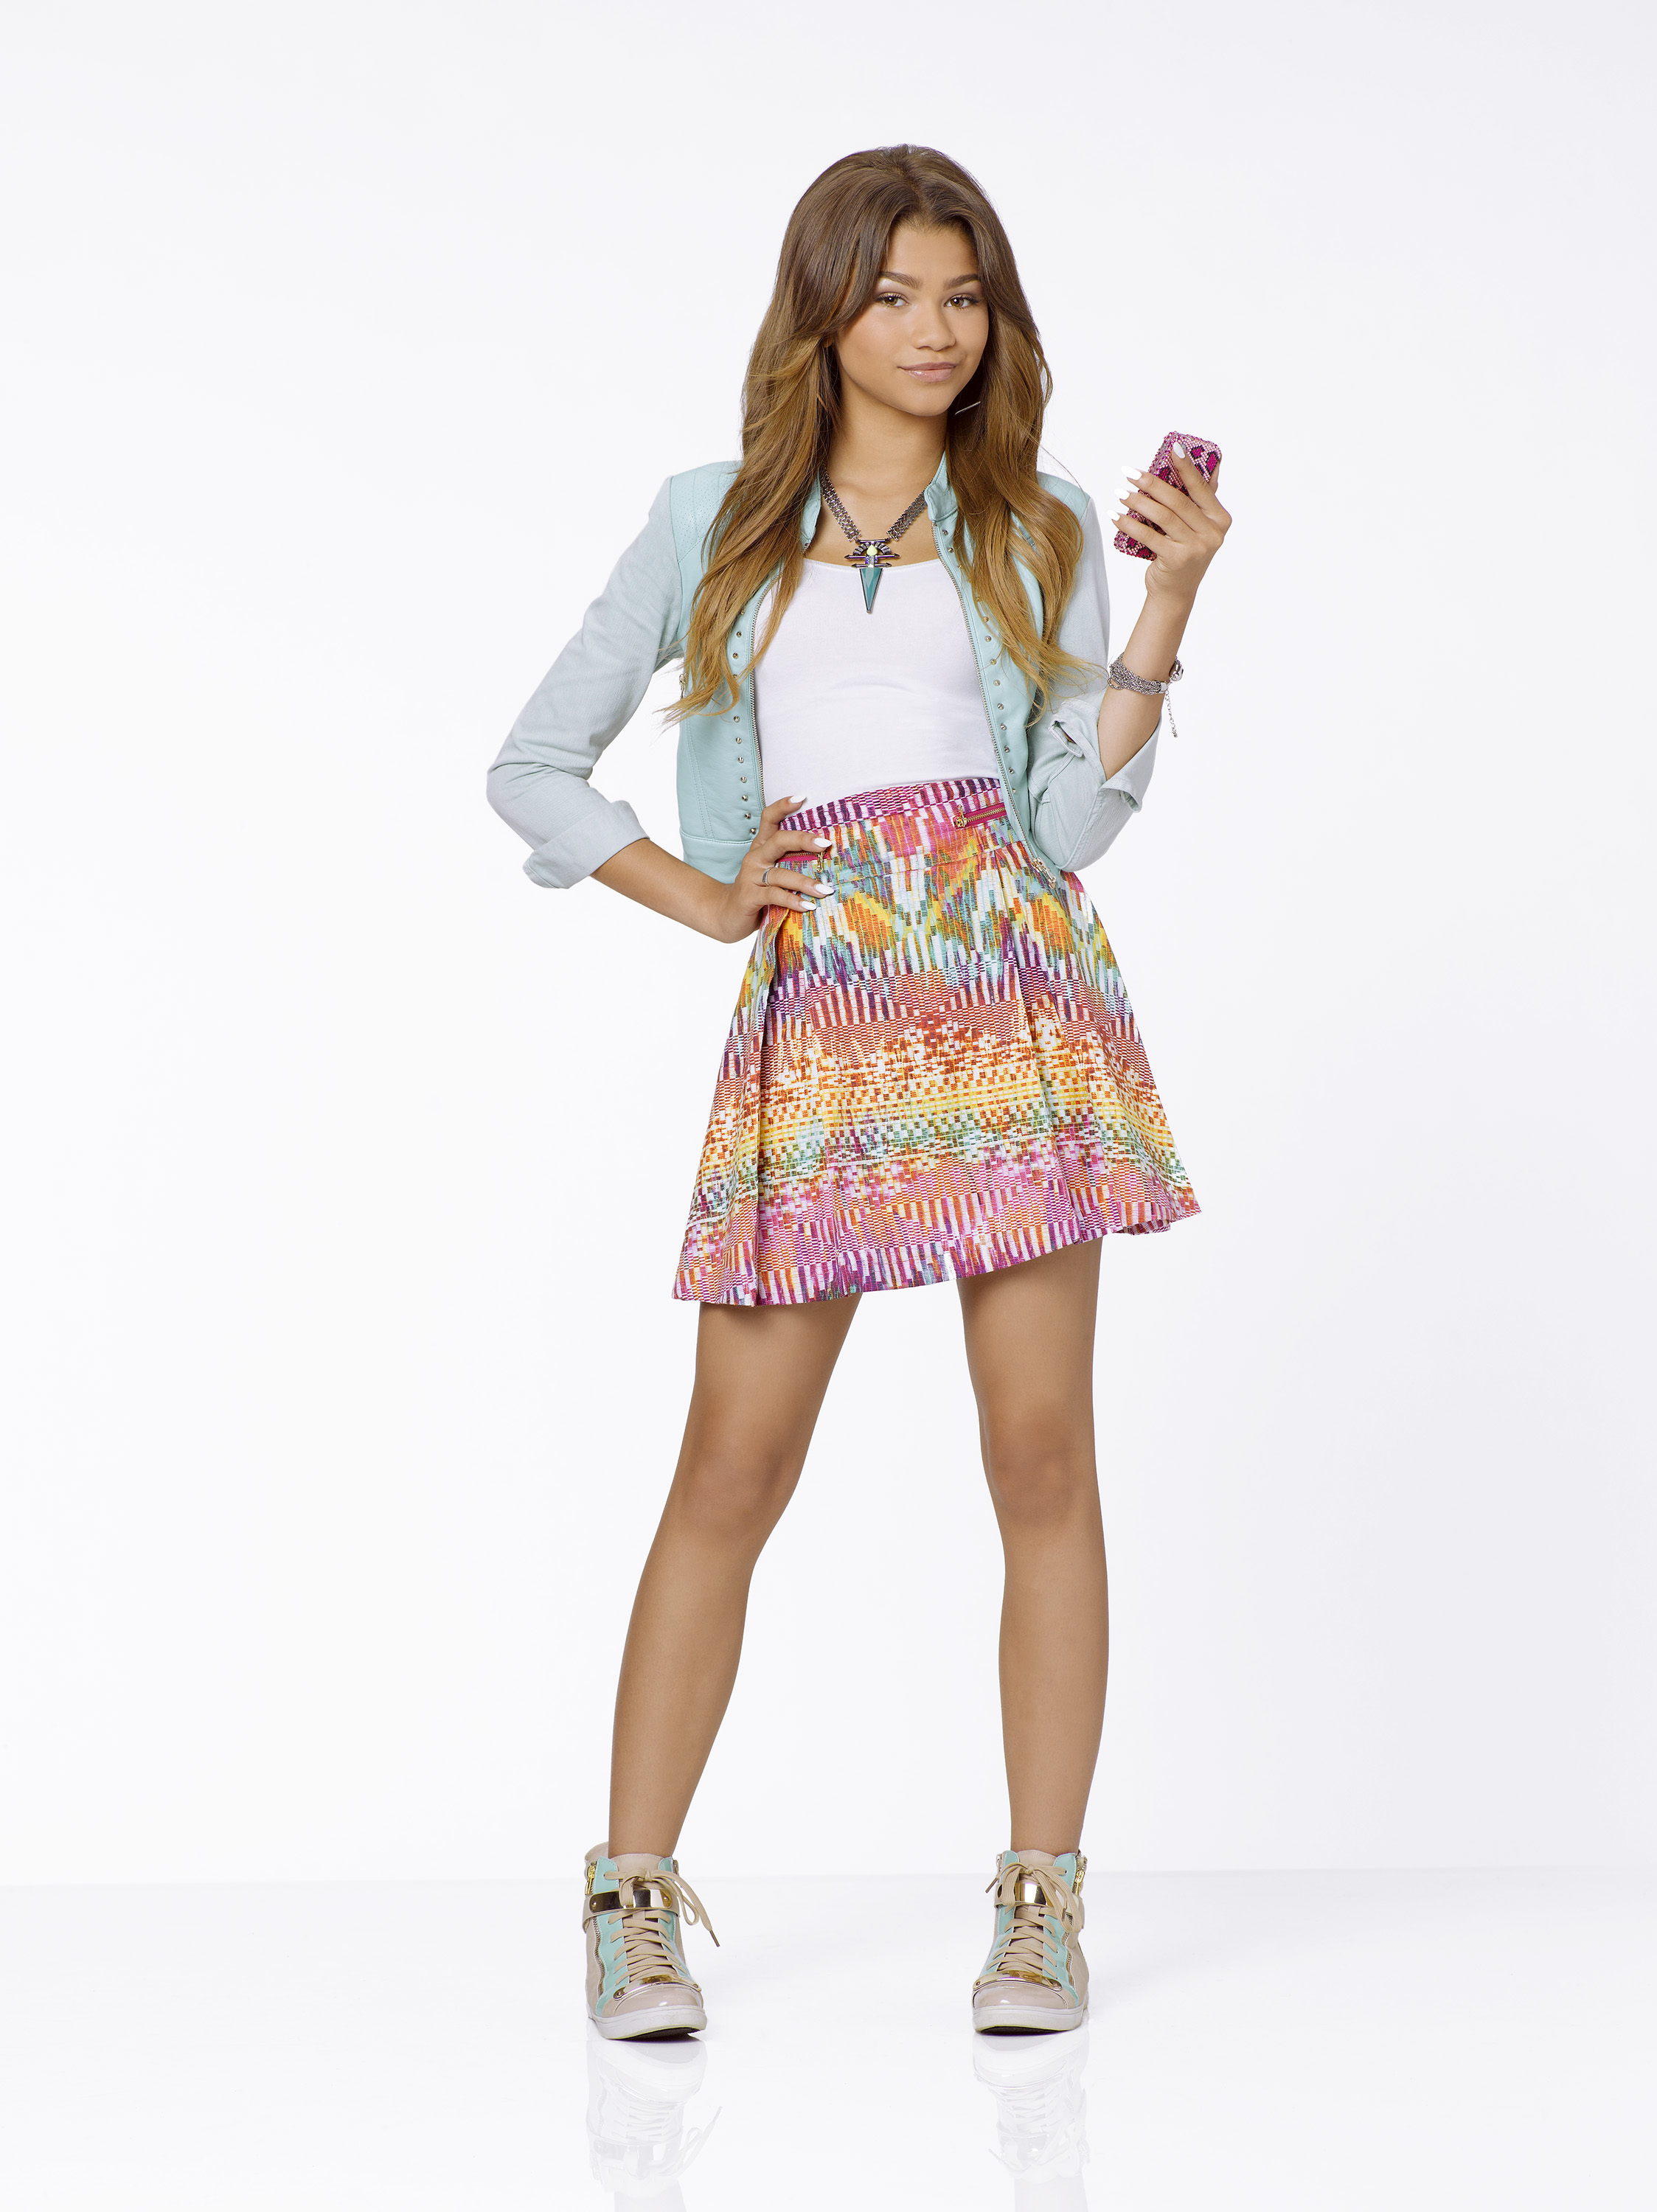 Zendaya Style On Shake It Up Zapped Zendaya images ...